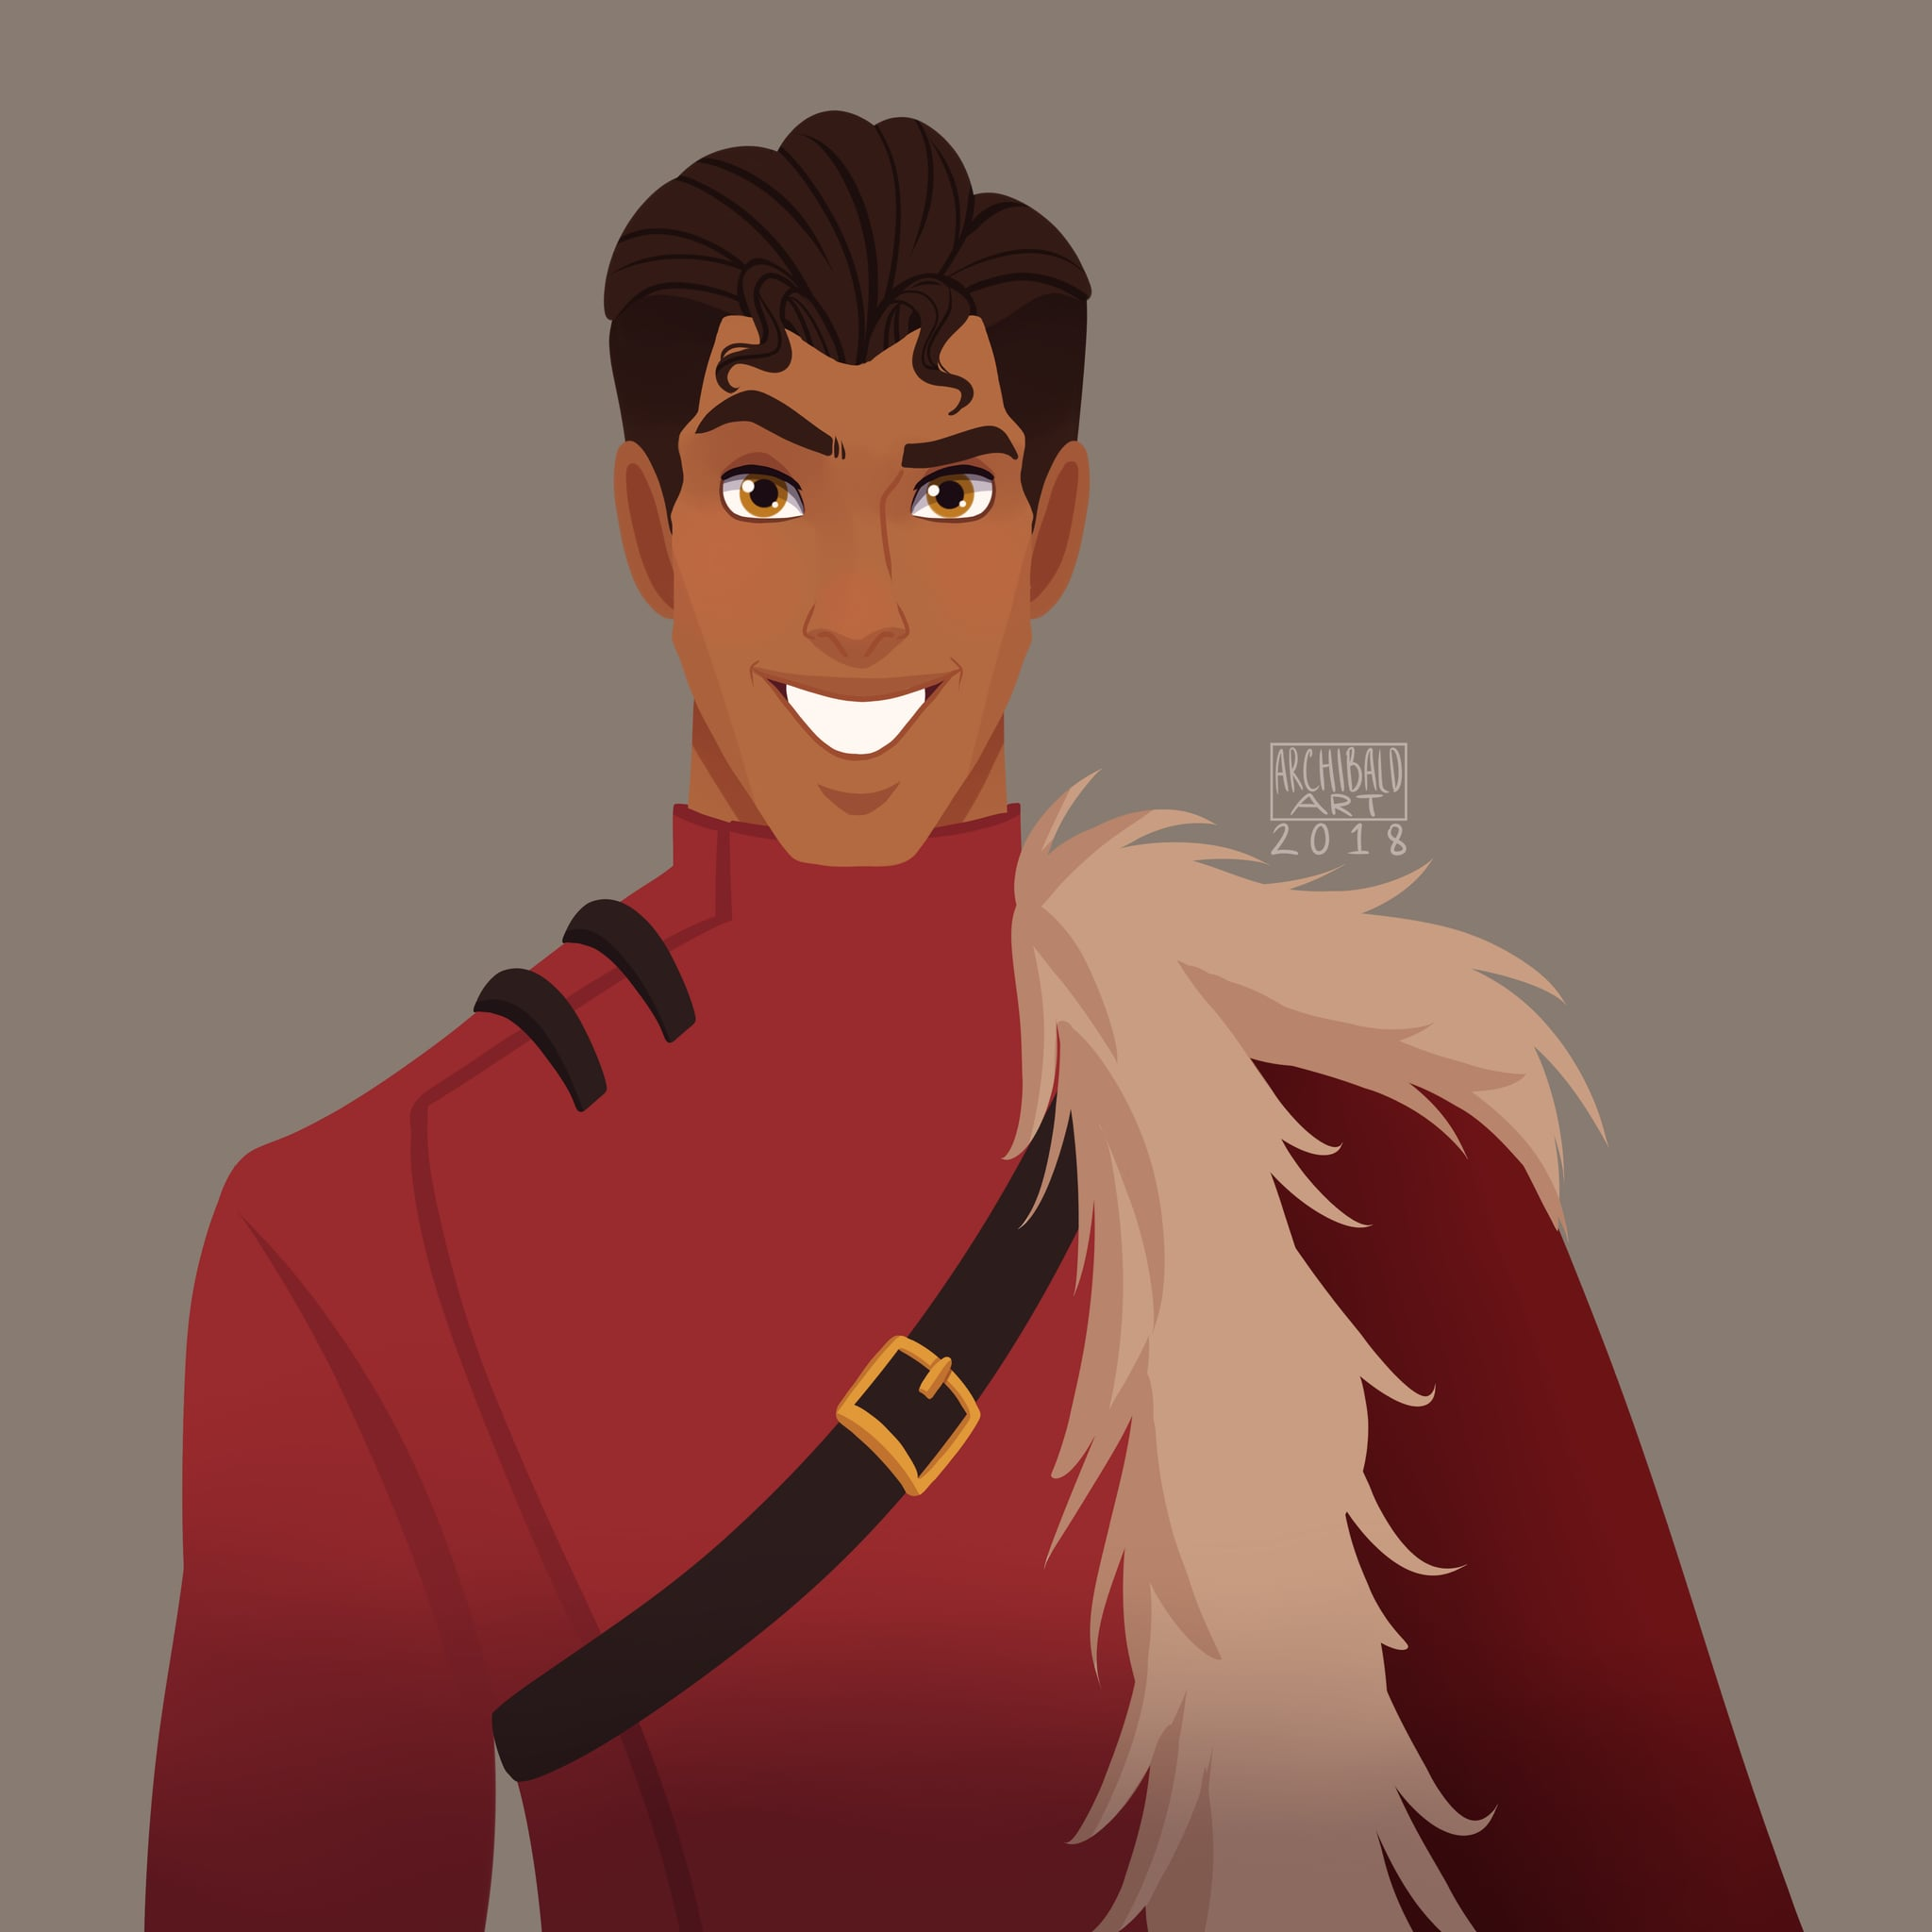 Prince Naveen From The Princess And The Frog In Durmstrang This